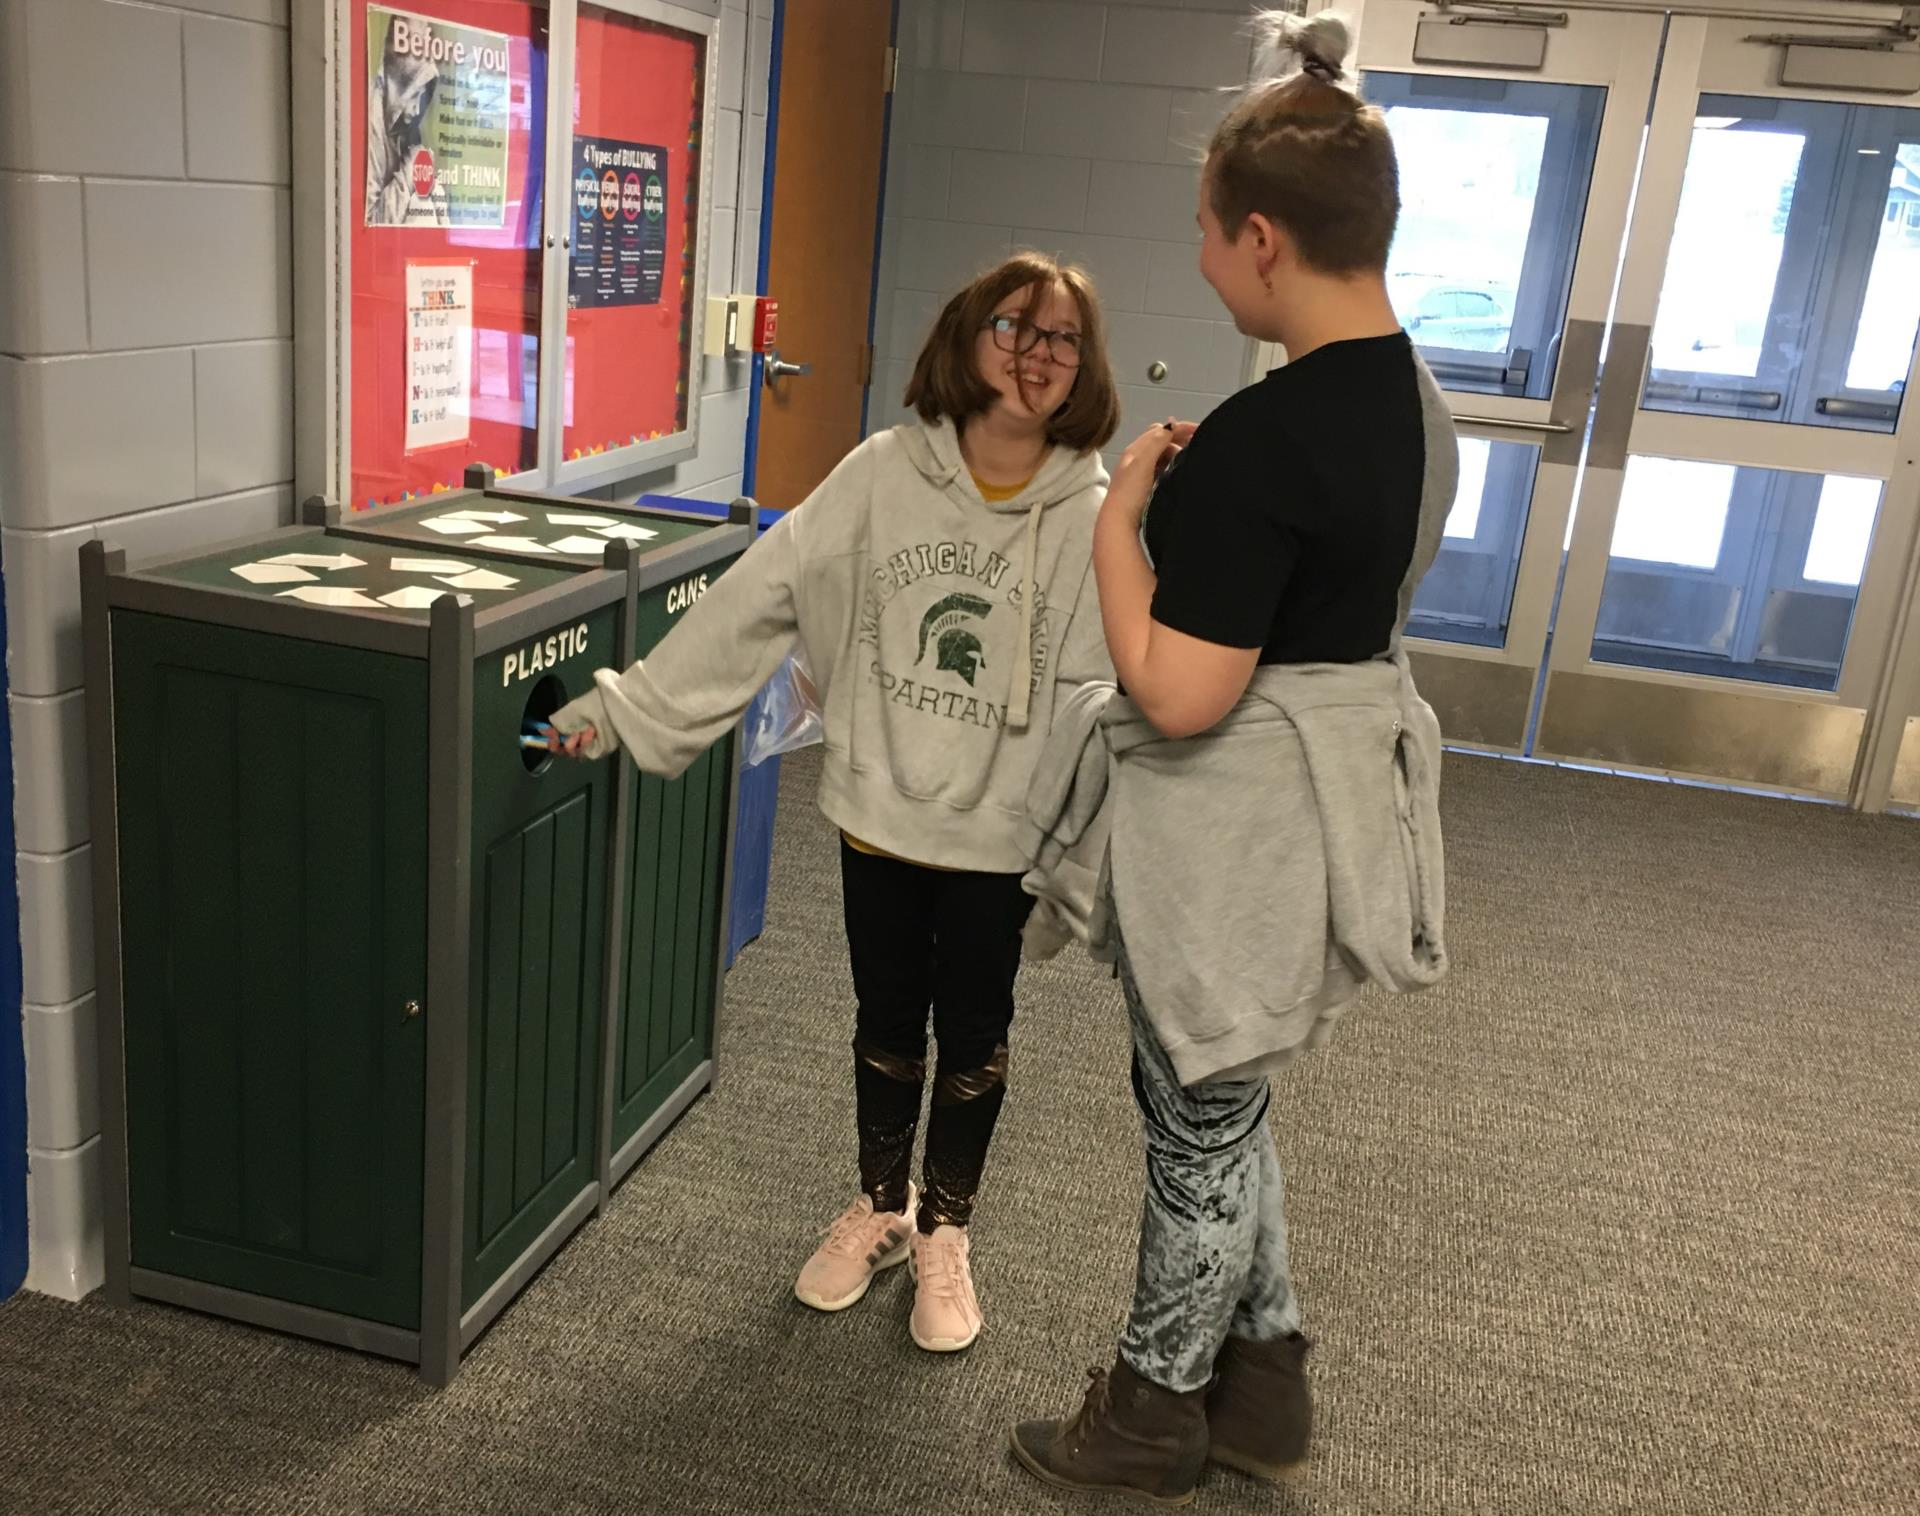 Recycling Bins in Use